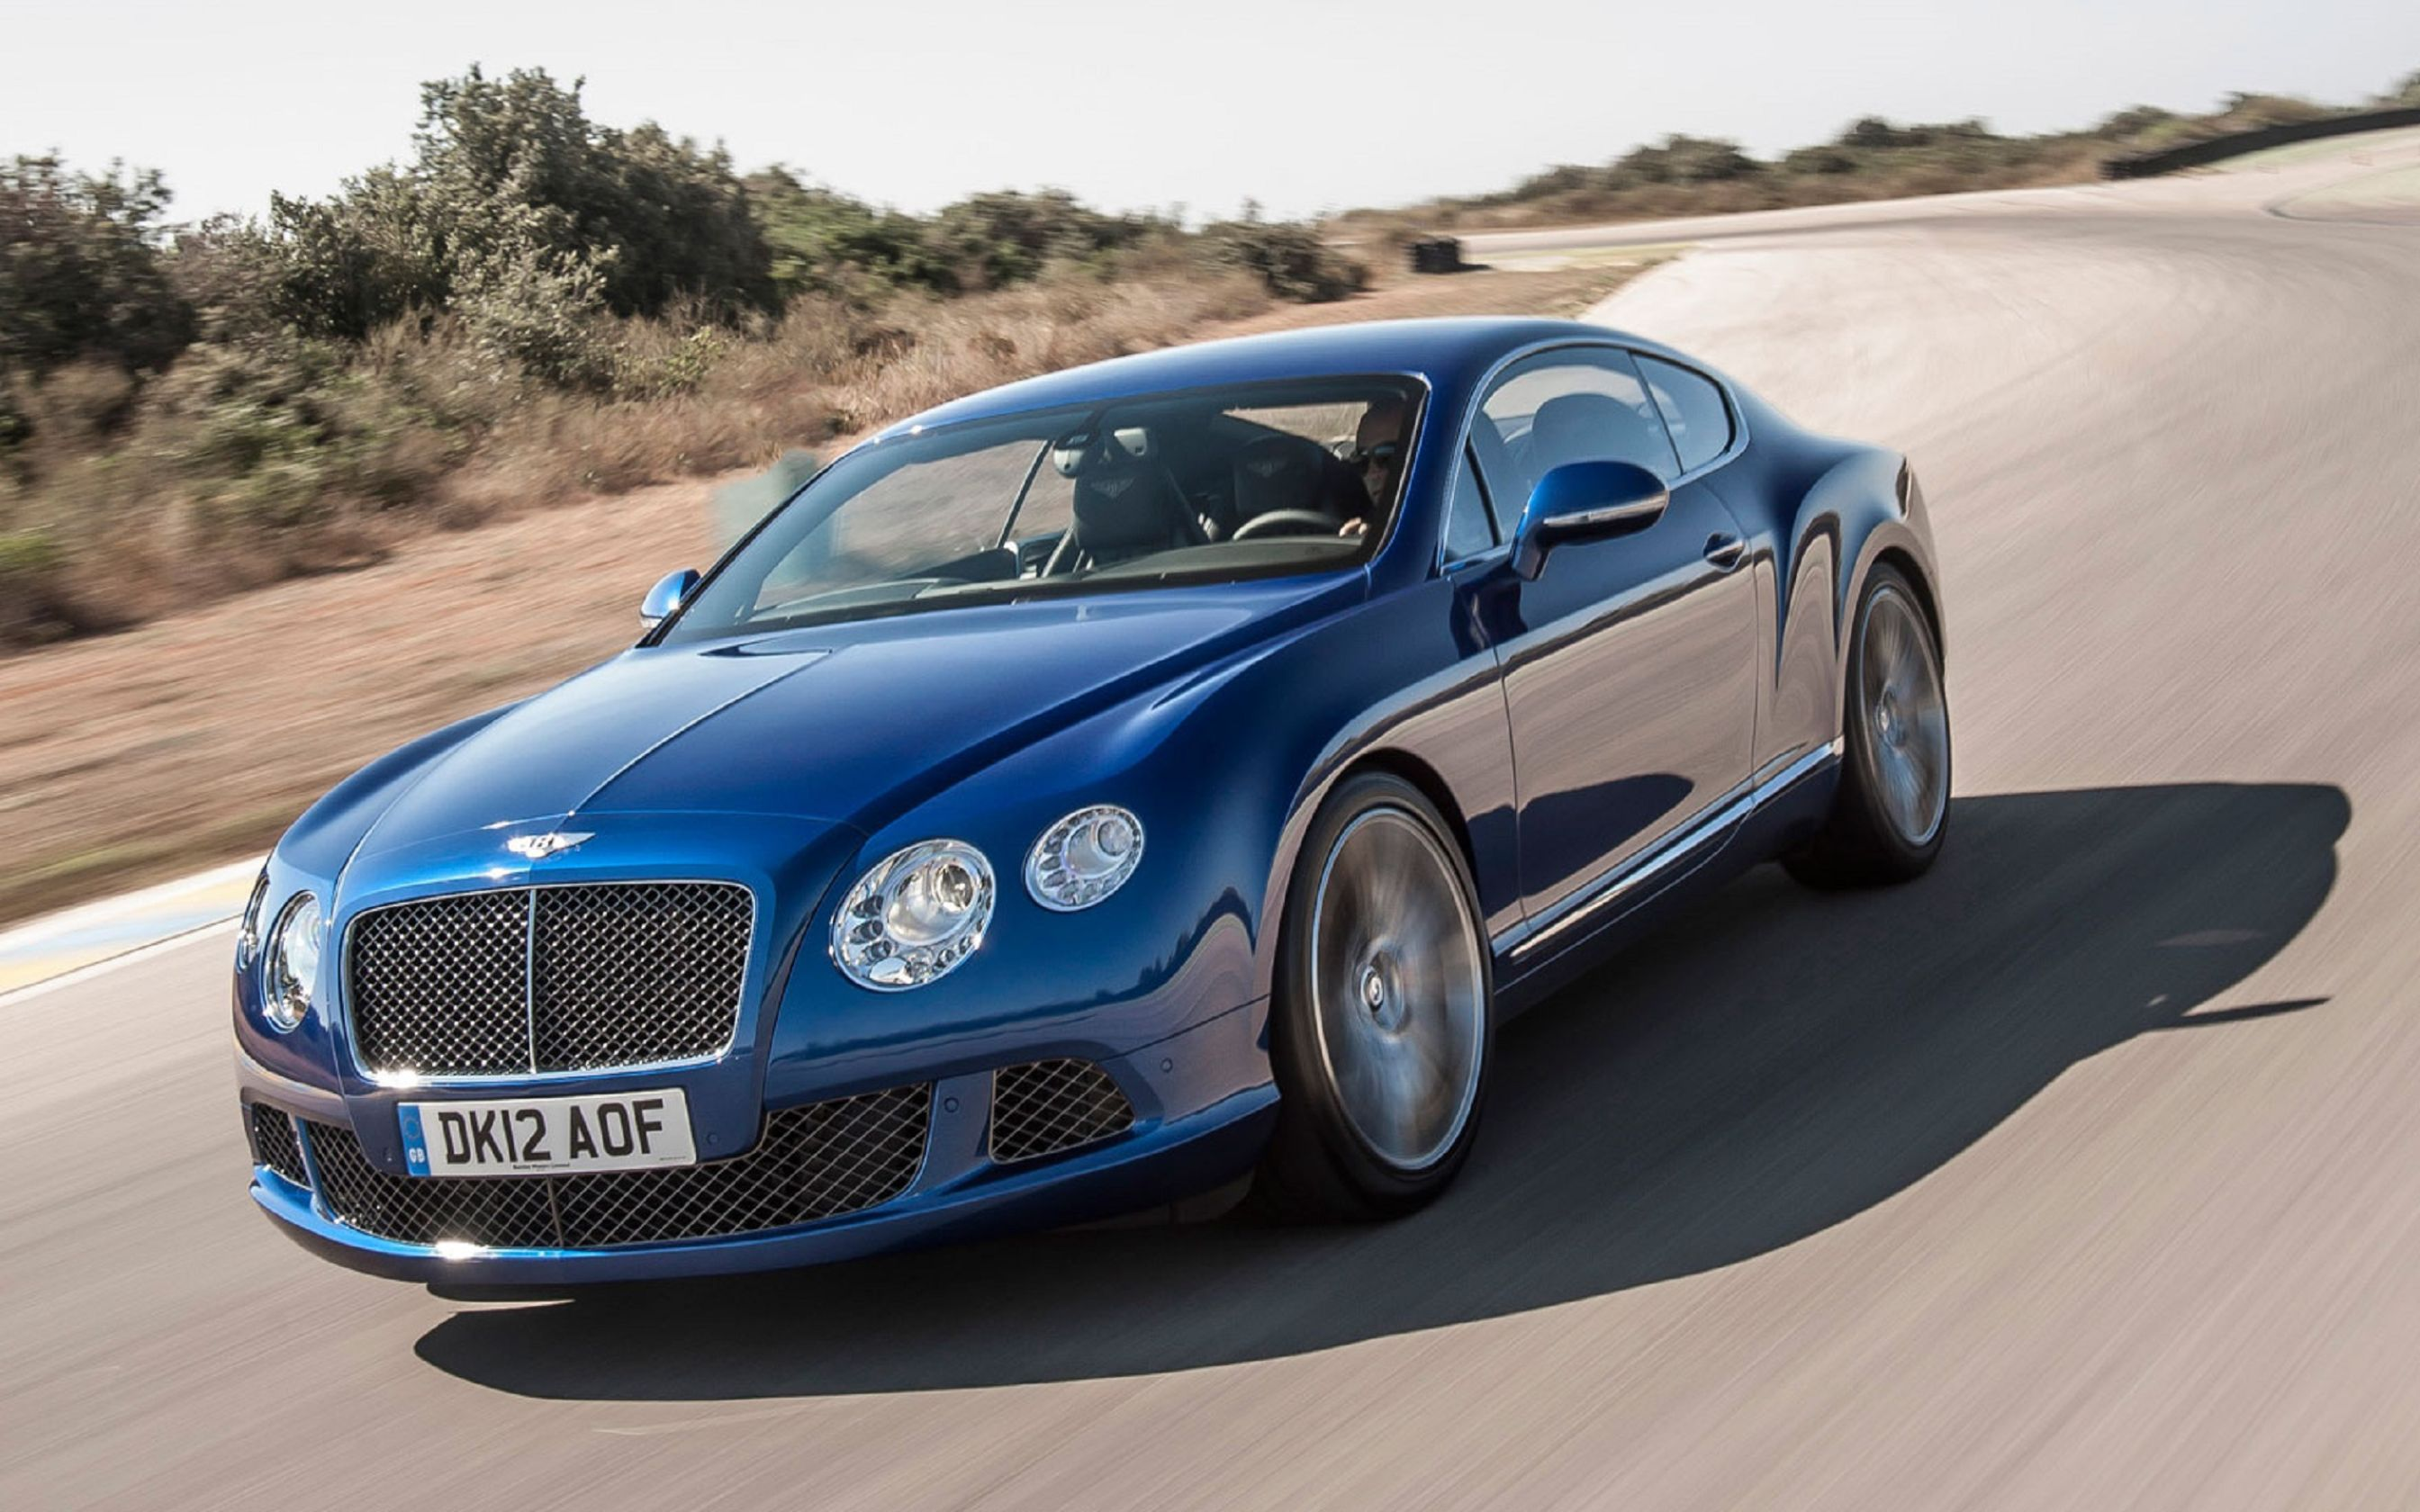 2015 Bentley Continental Gt V8 S Blue Color Wallpaper Desktop Hd Wallpaper Download Free